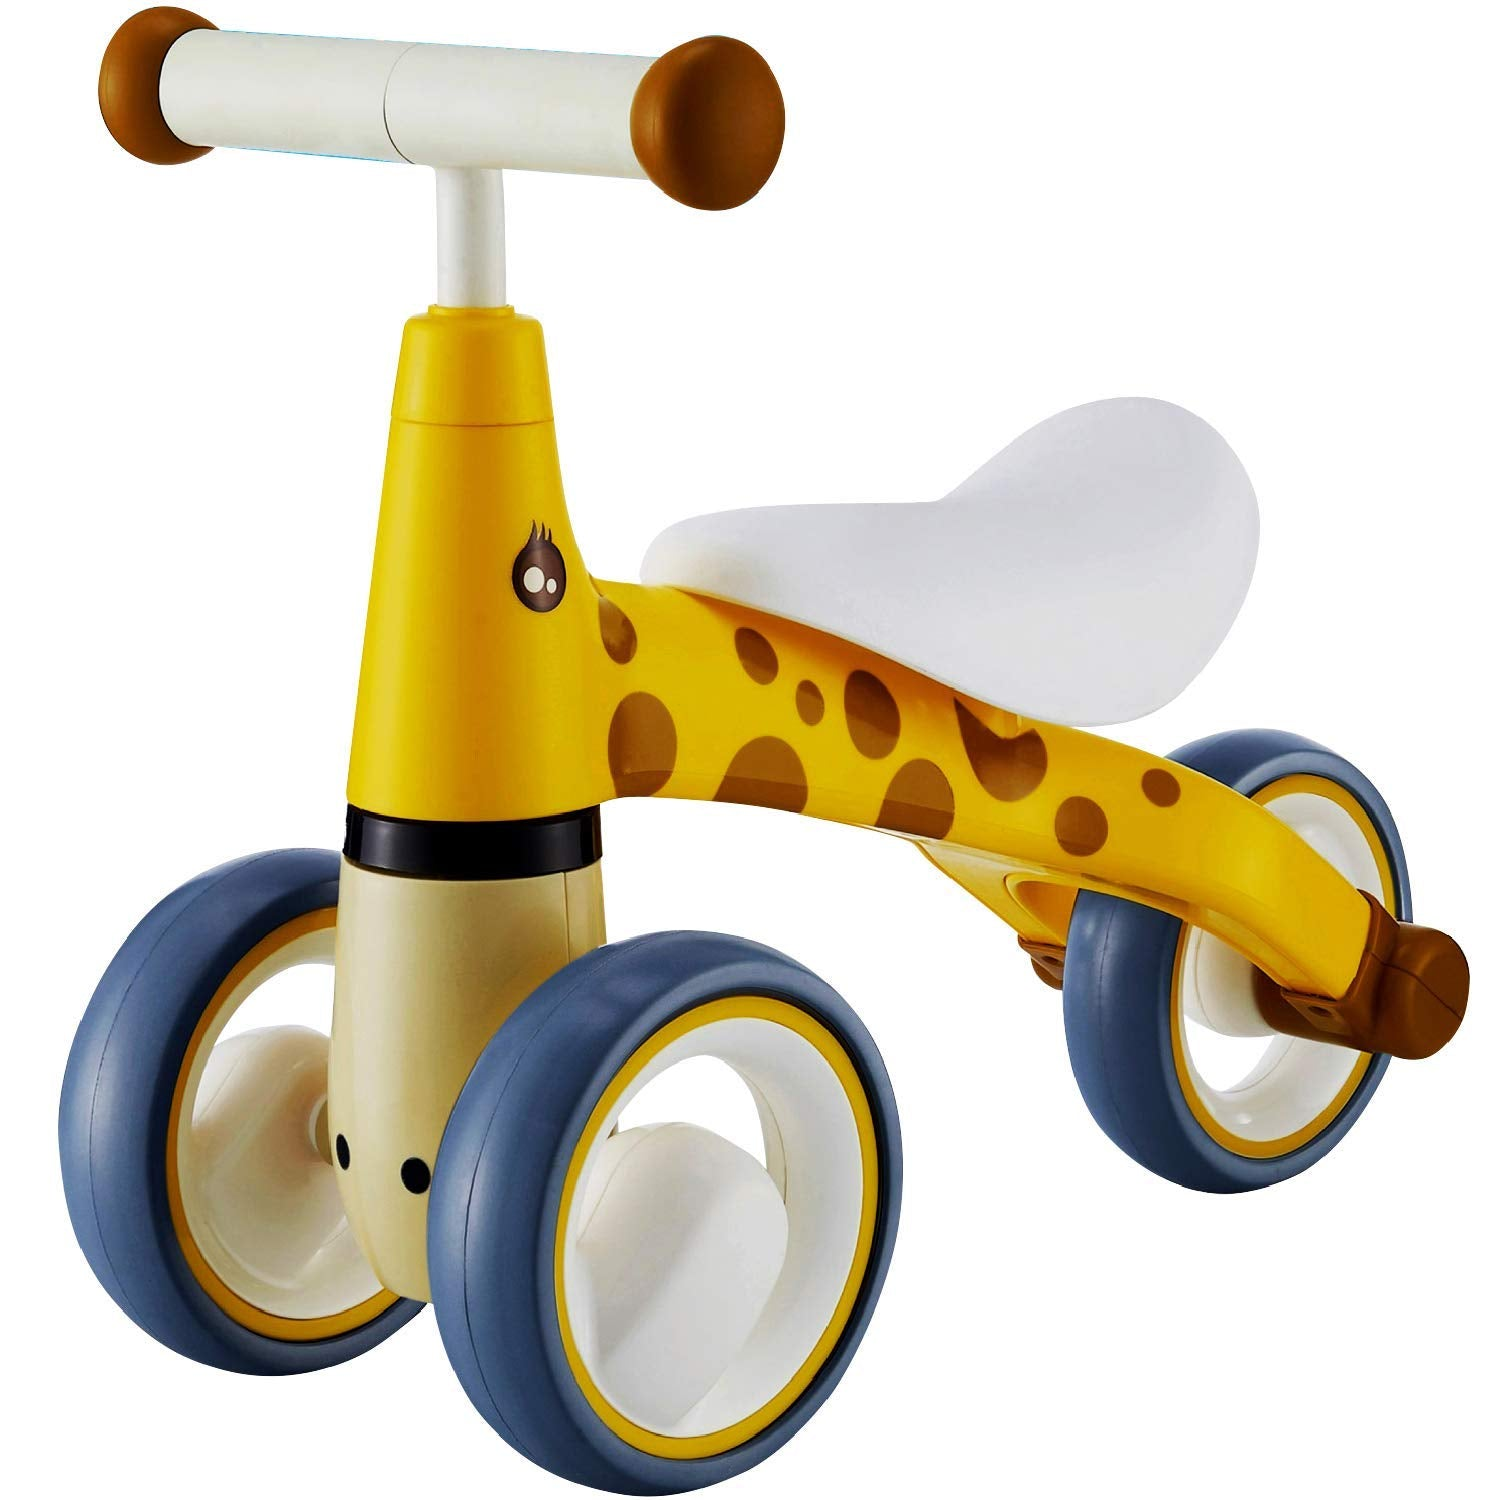 "Baby Balance Bikes Ages 6-24 Months ""ASTM Safety Approved"""